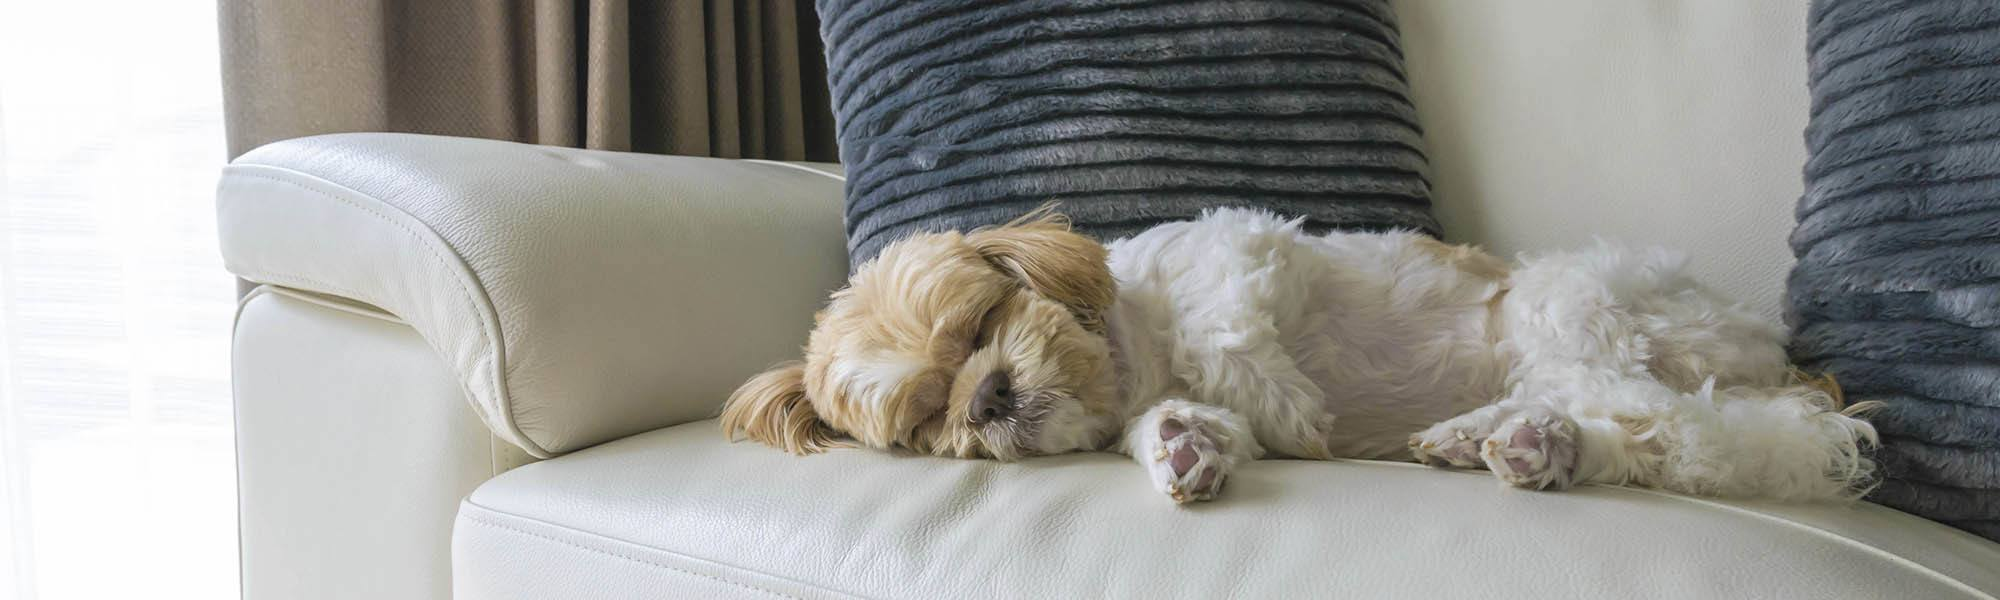 Pet friendly apartments in Tallahassee